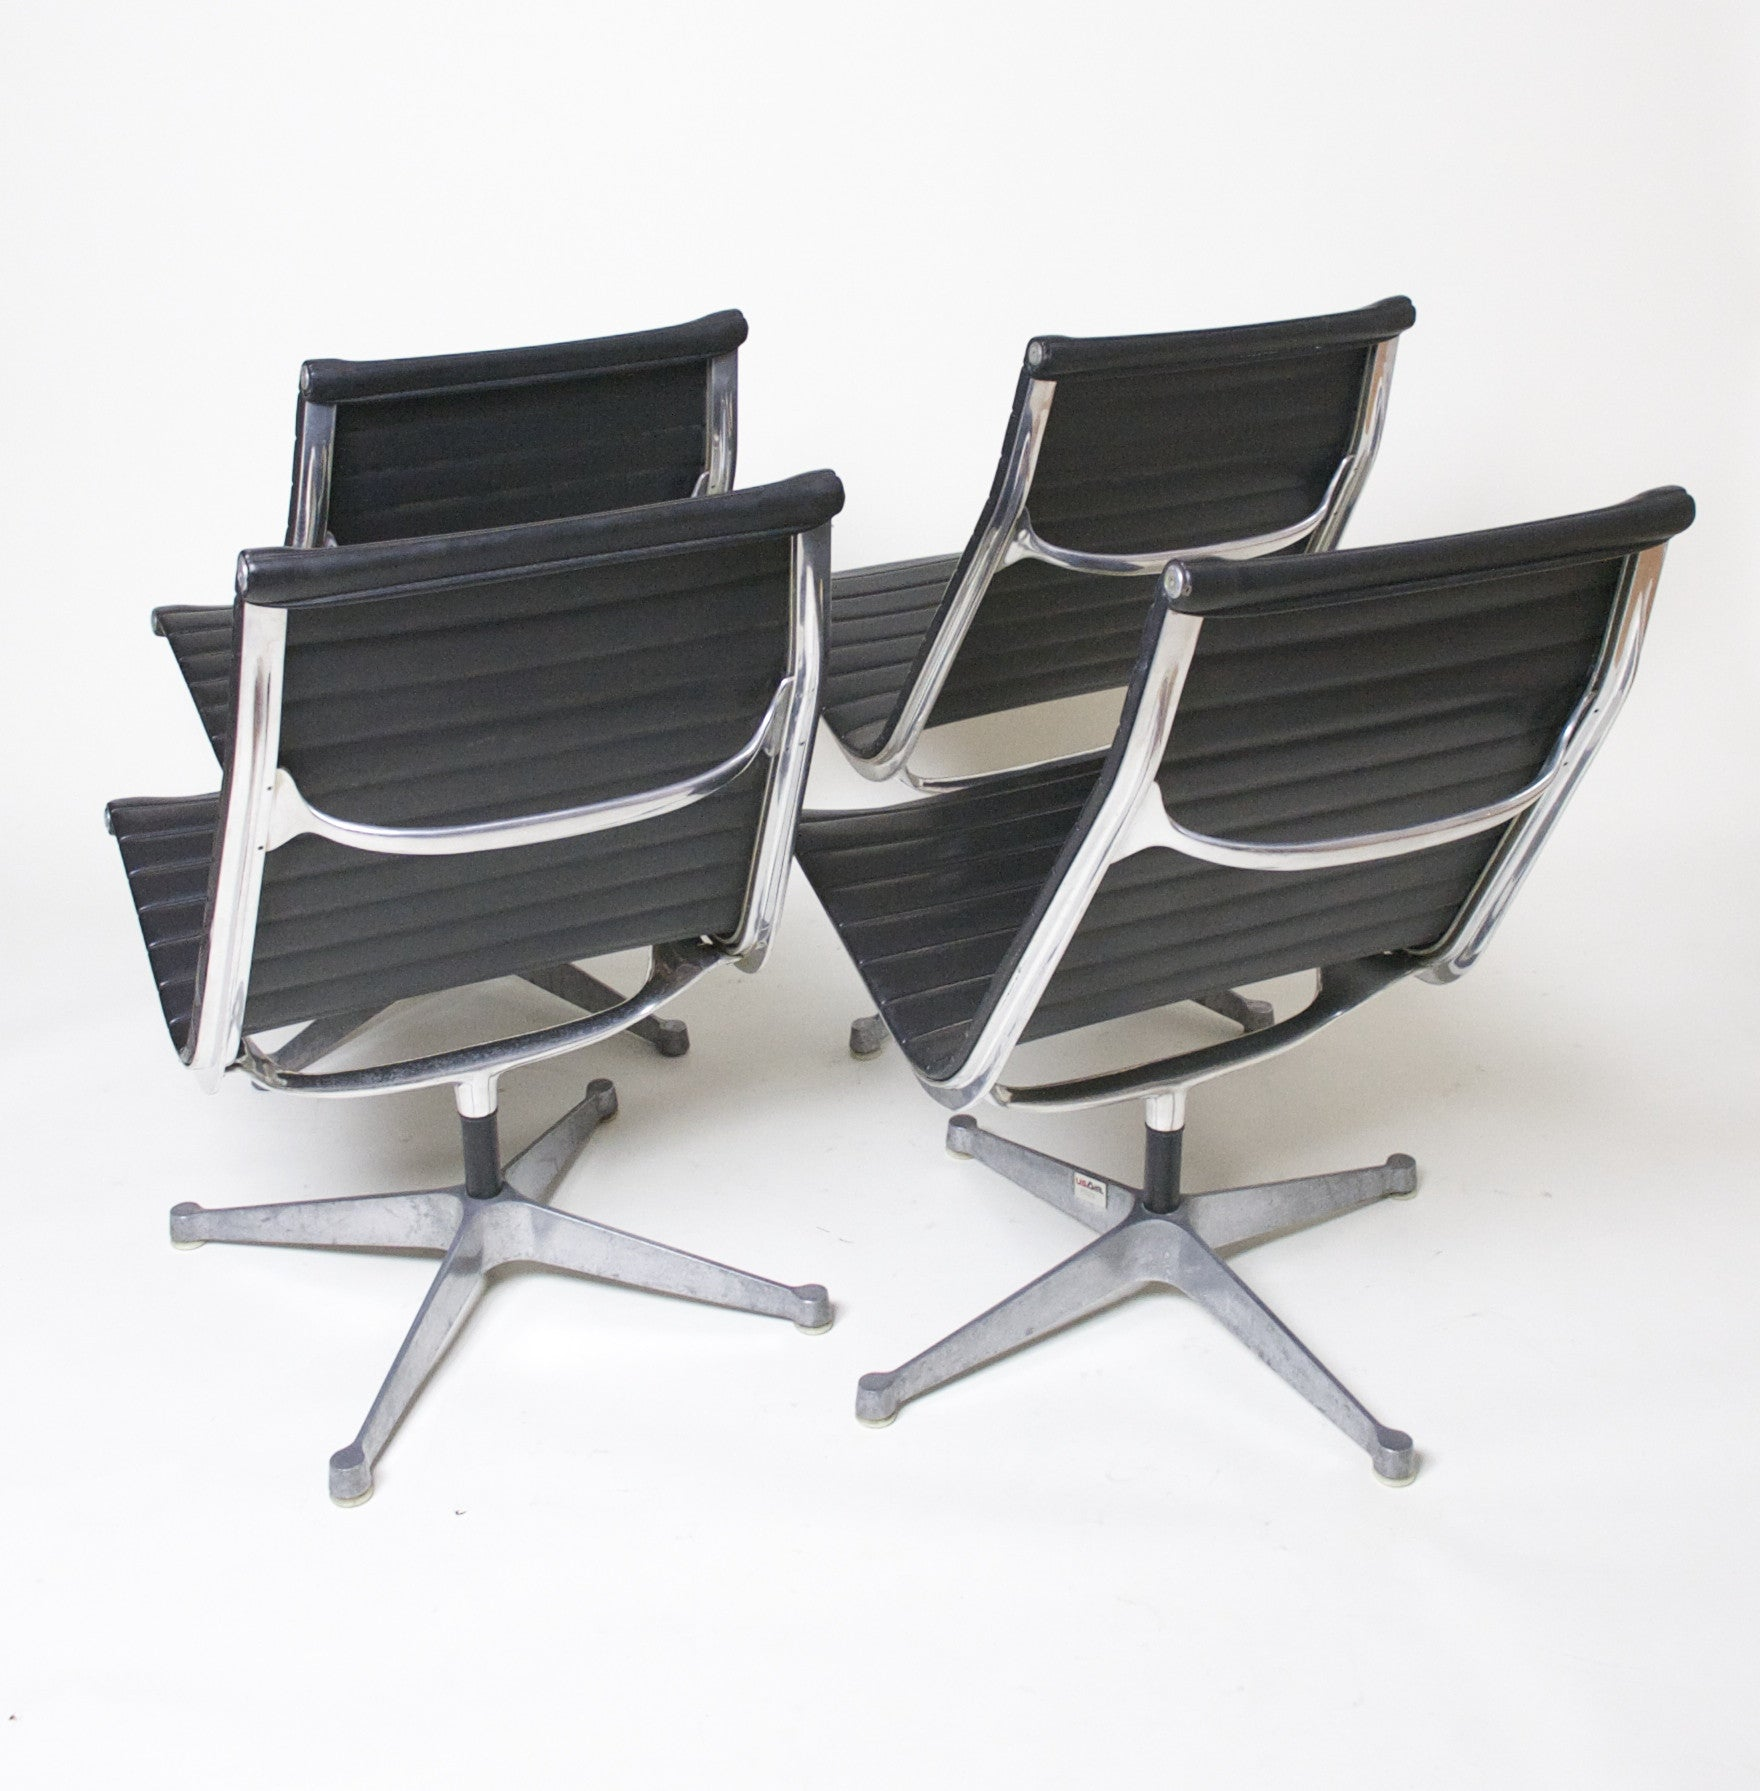 Beautiful eames aluminum group lounge chair new - Eames aluminum group lounge chair replica ...